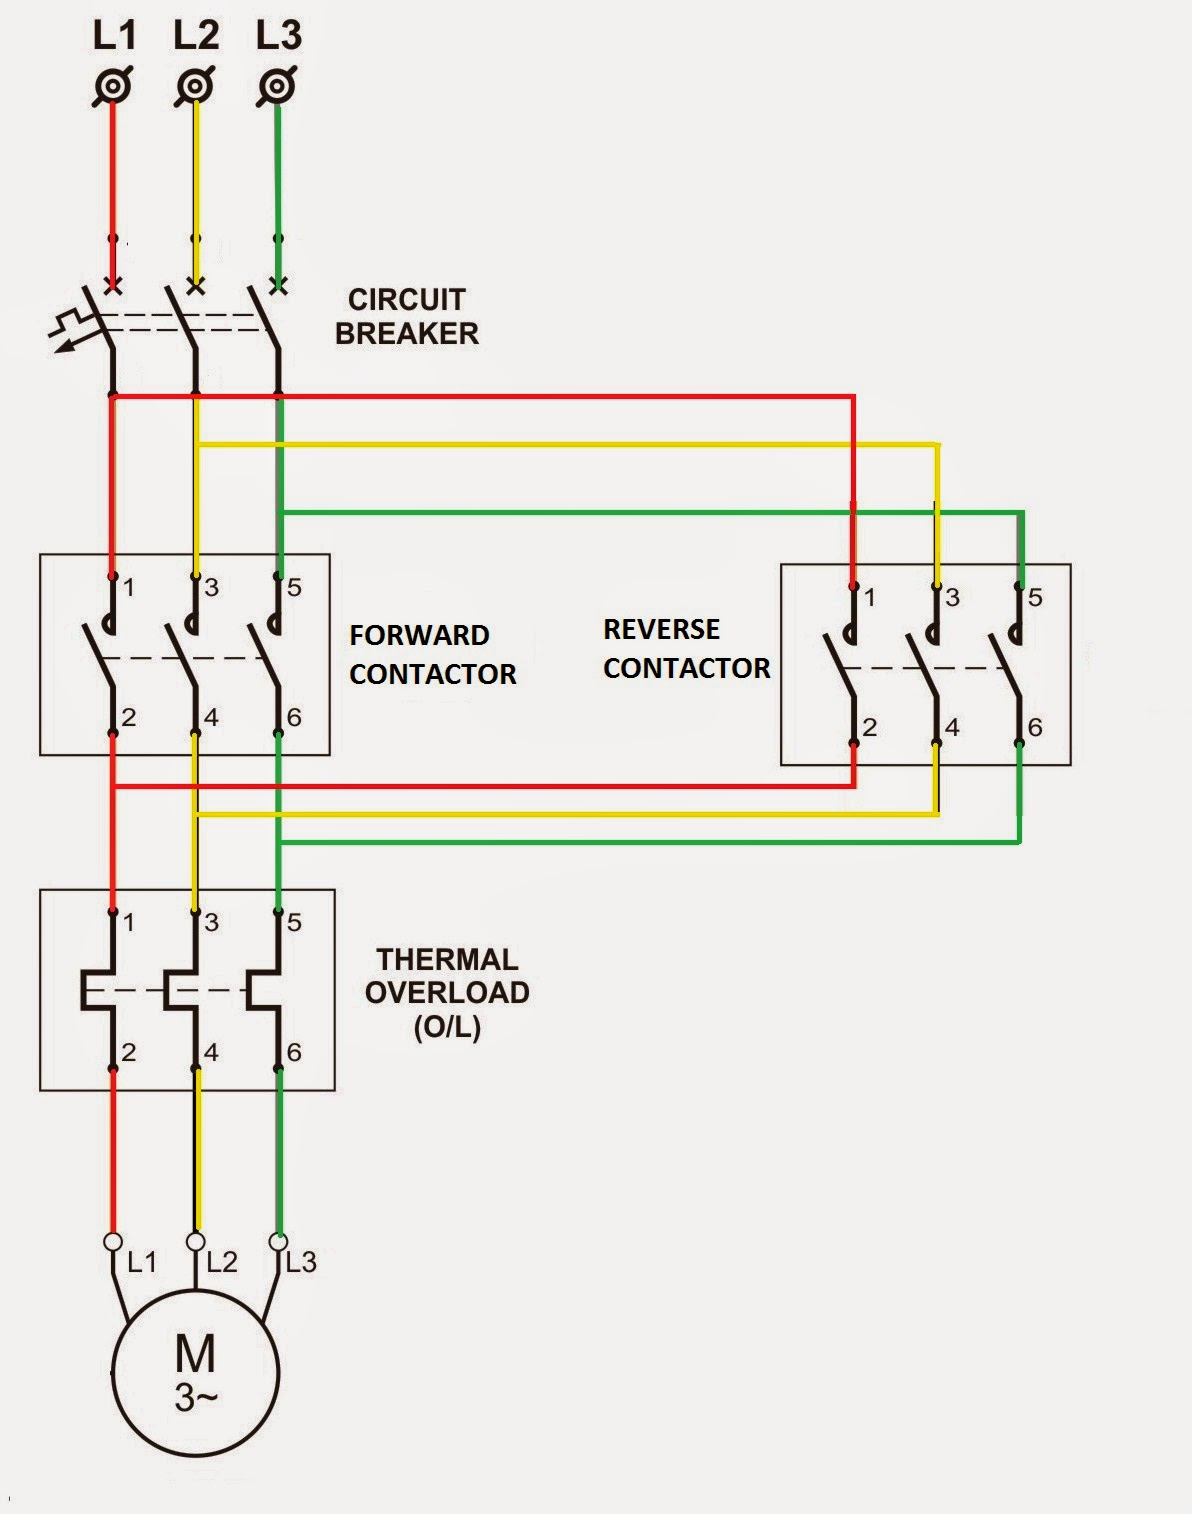 medium resolution of above diagrams shows where overload is connected in motor circuit you may see that in control circuit overload relay comes first in line but in power